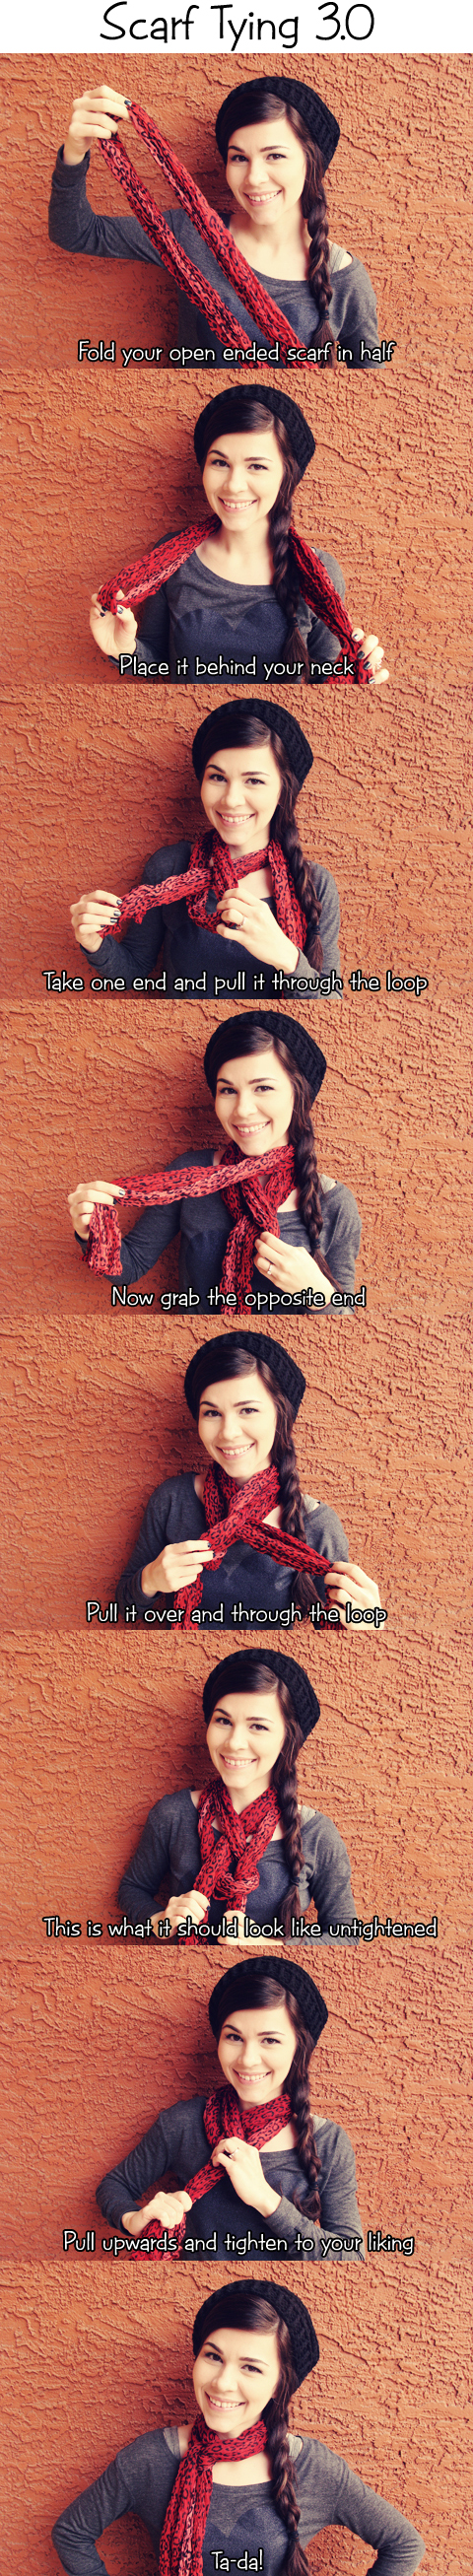 Scarf Tying 3.0 | Style Through Her Eyes